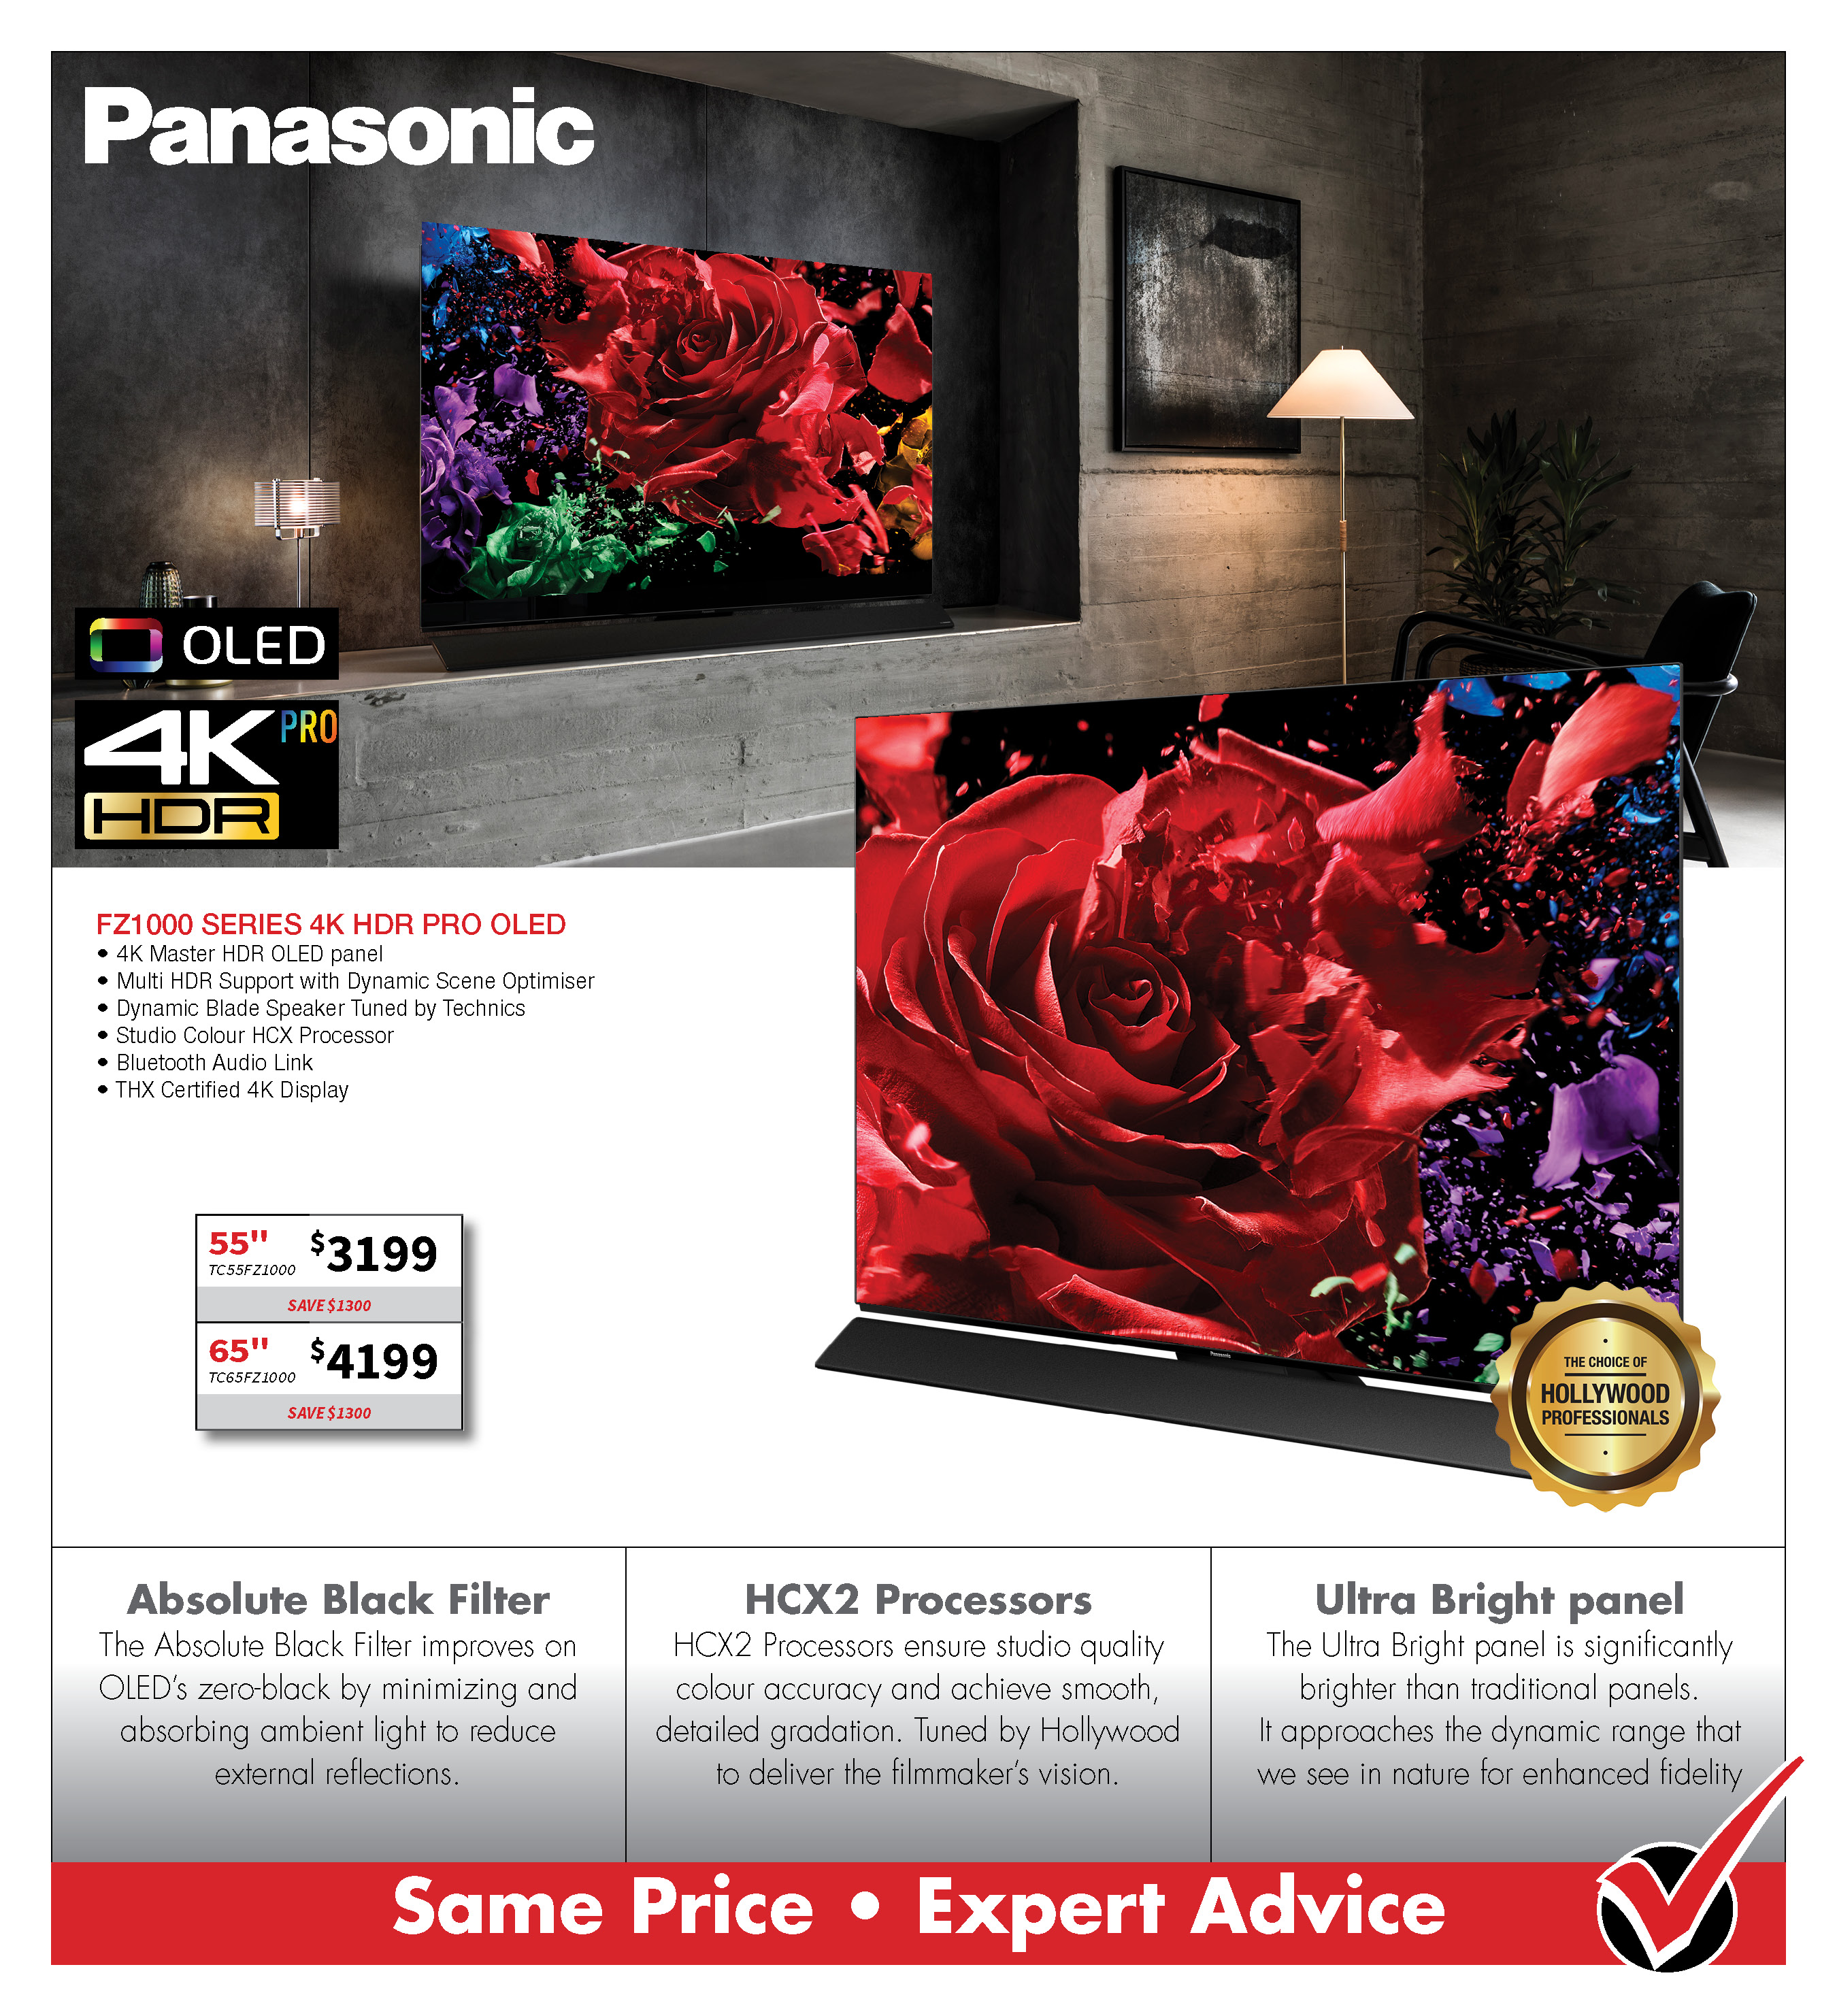 PANASONIC FZ1000 4K OLED TV